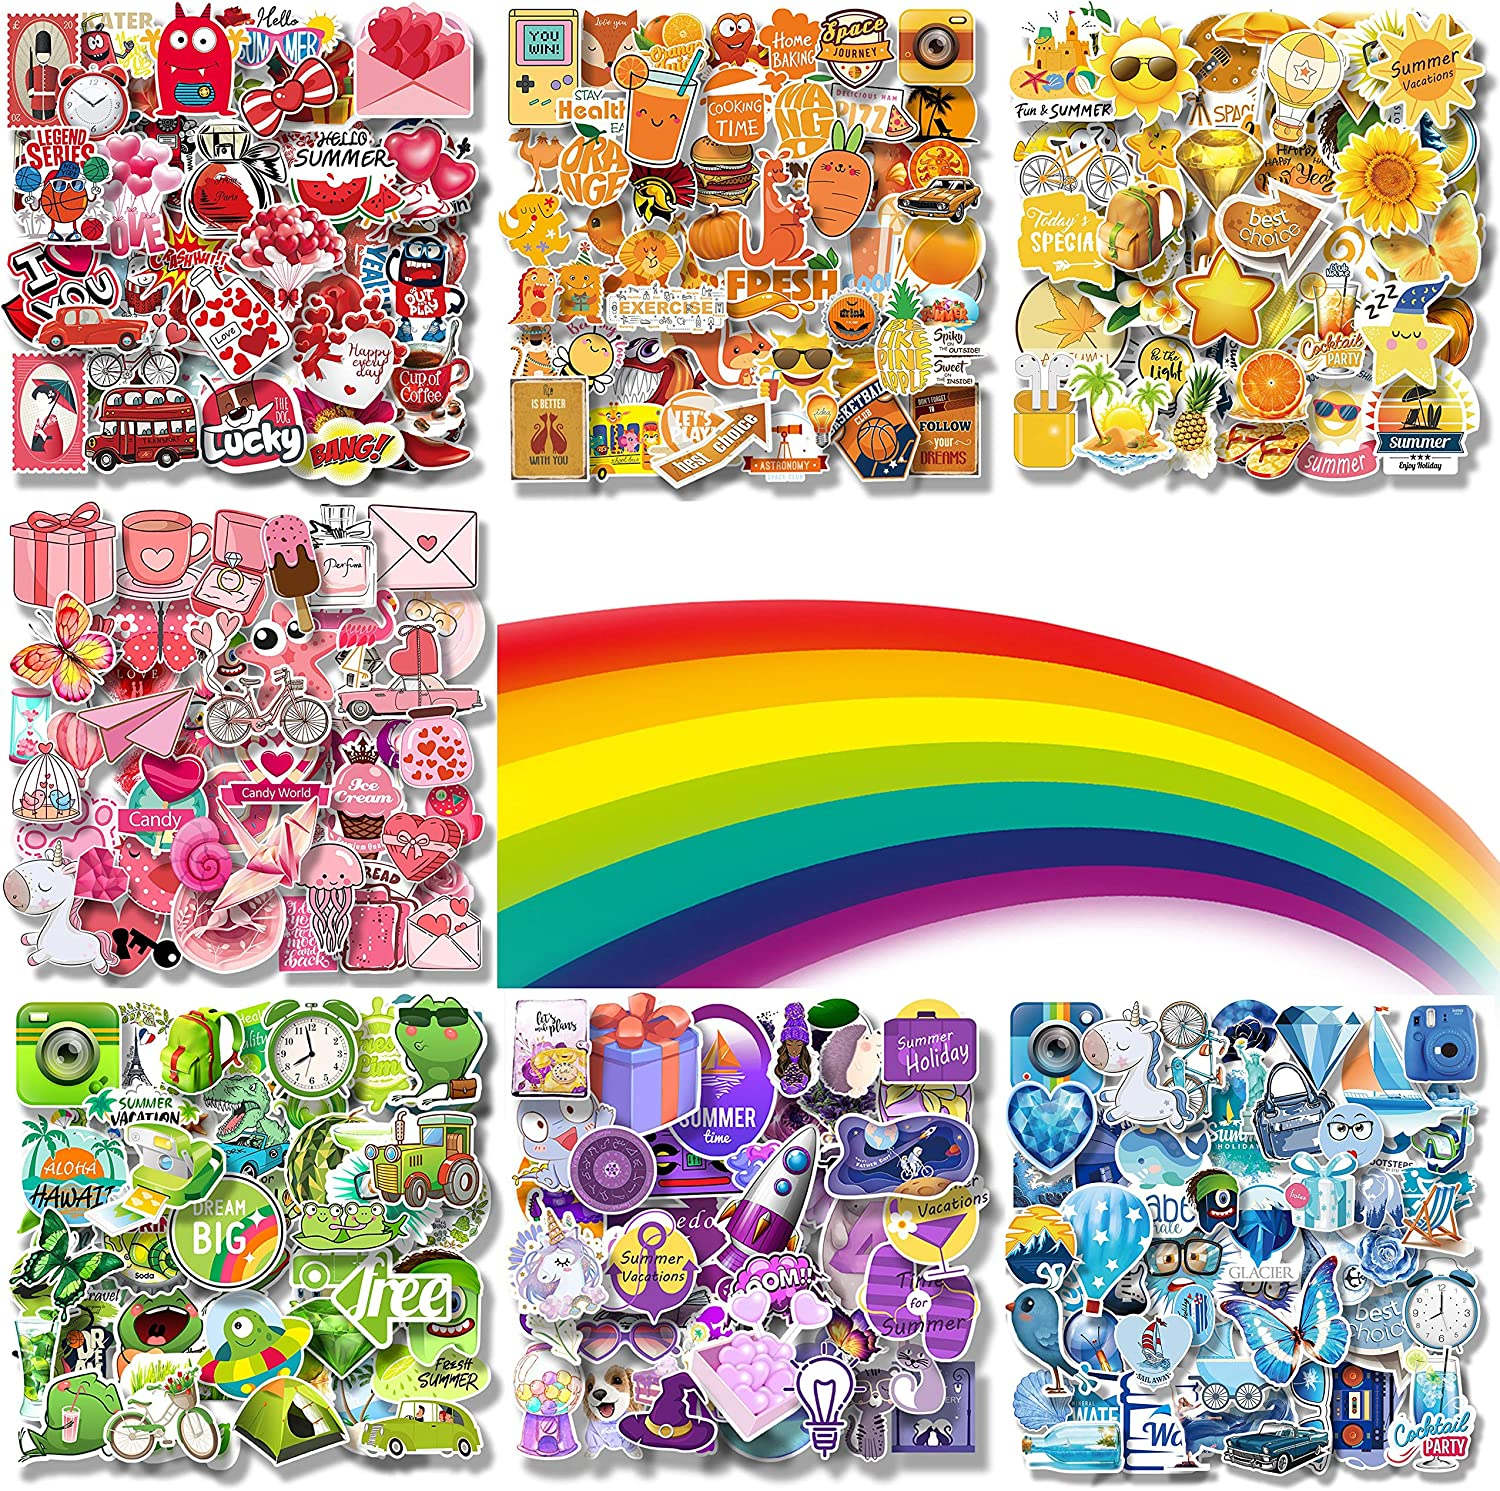 350-Pcs Rainbow Cute Color Series Stickers(50-350Pcs/Pack), Rainbow Style. Waterproof Cute Stickers for Teenagers, Children, and Adults. Vsco Stickers for Water Bottle.